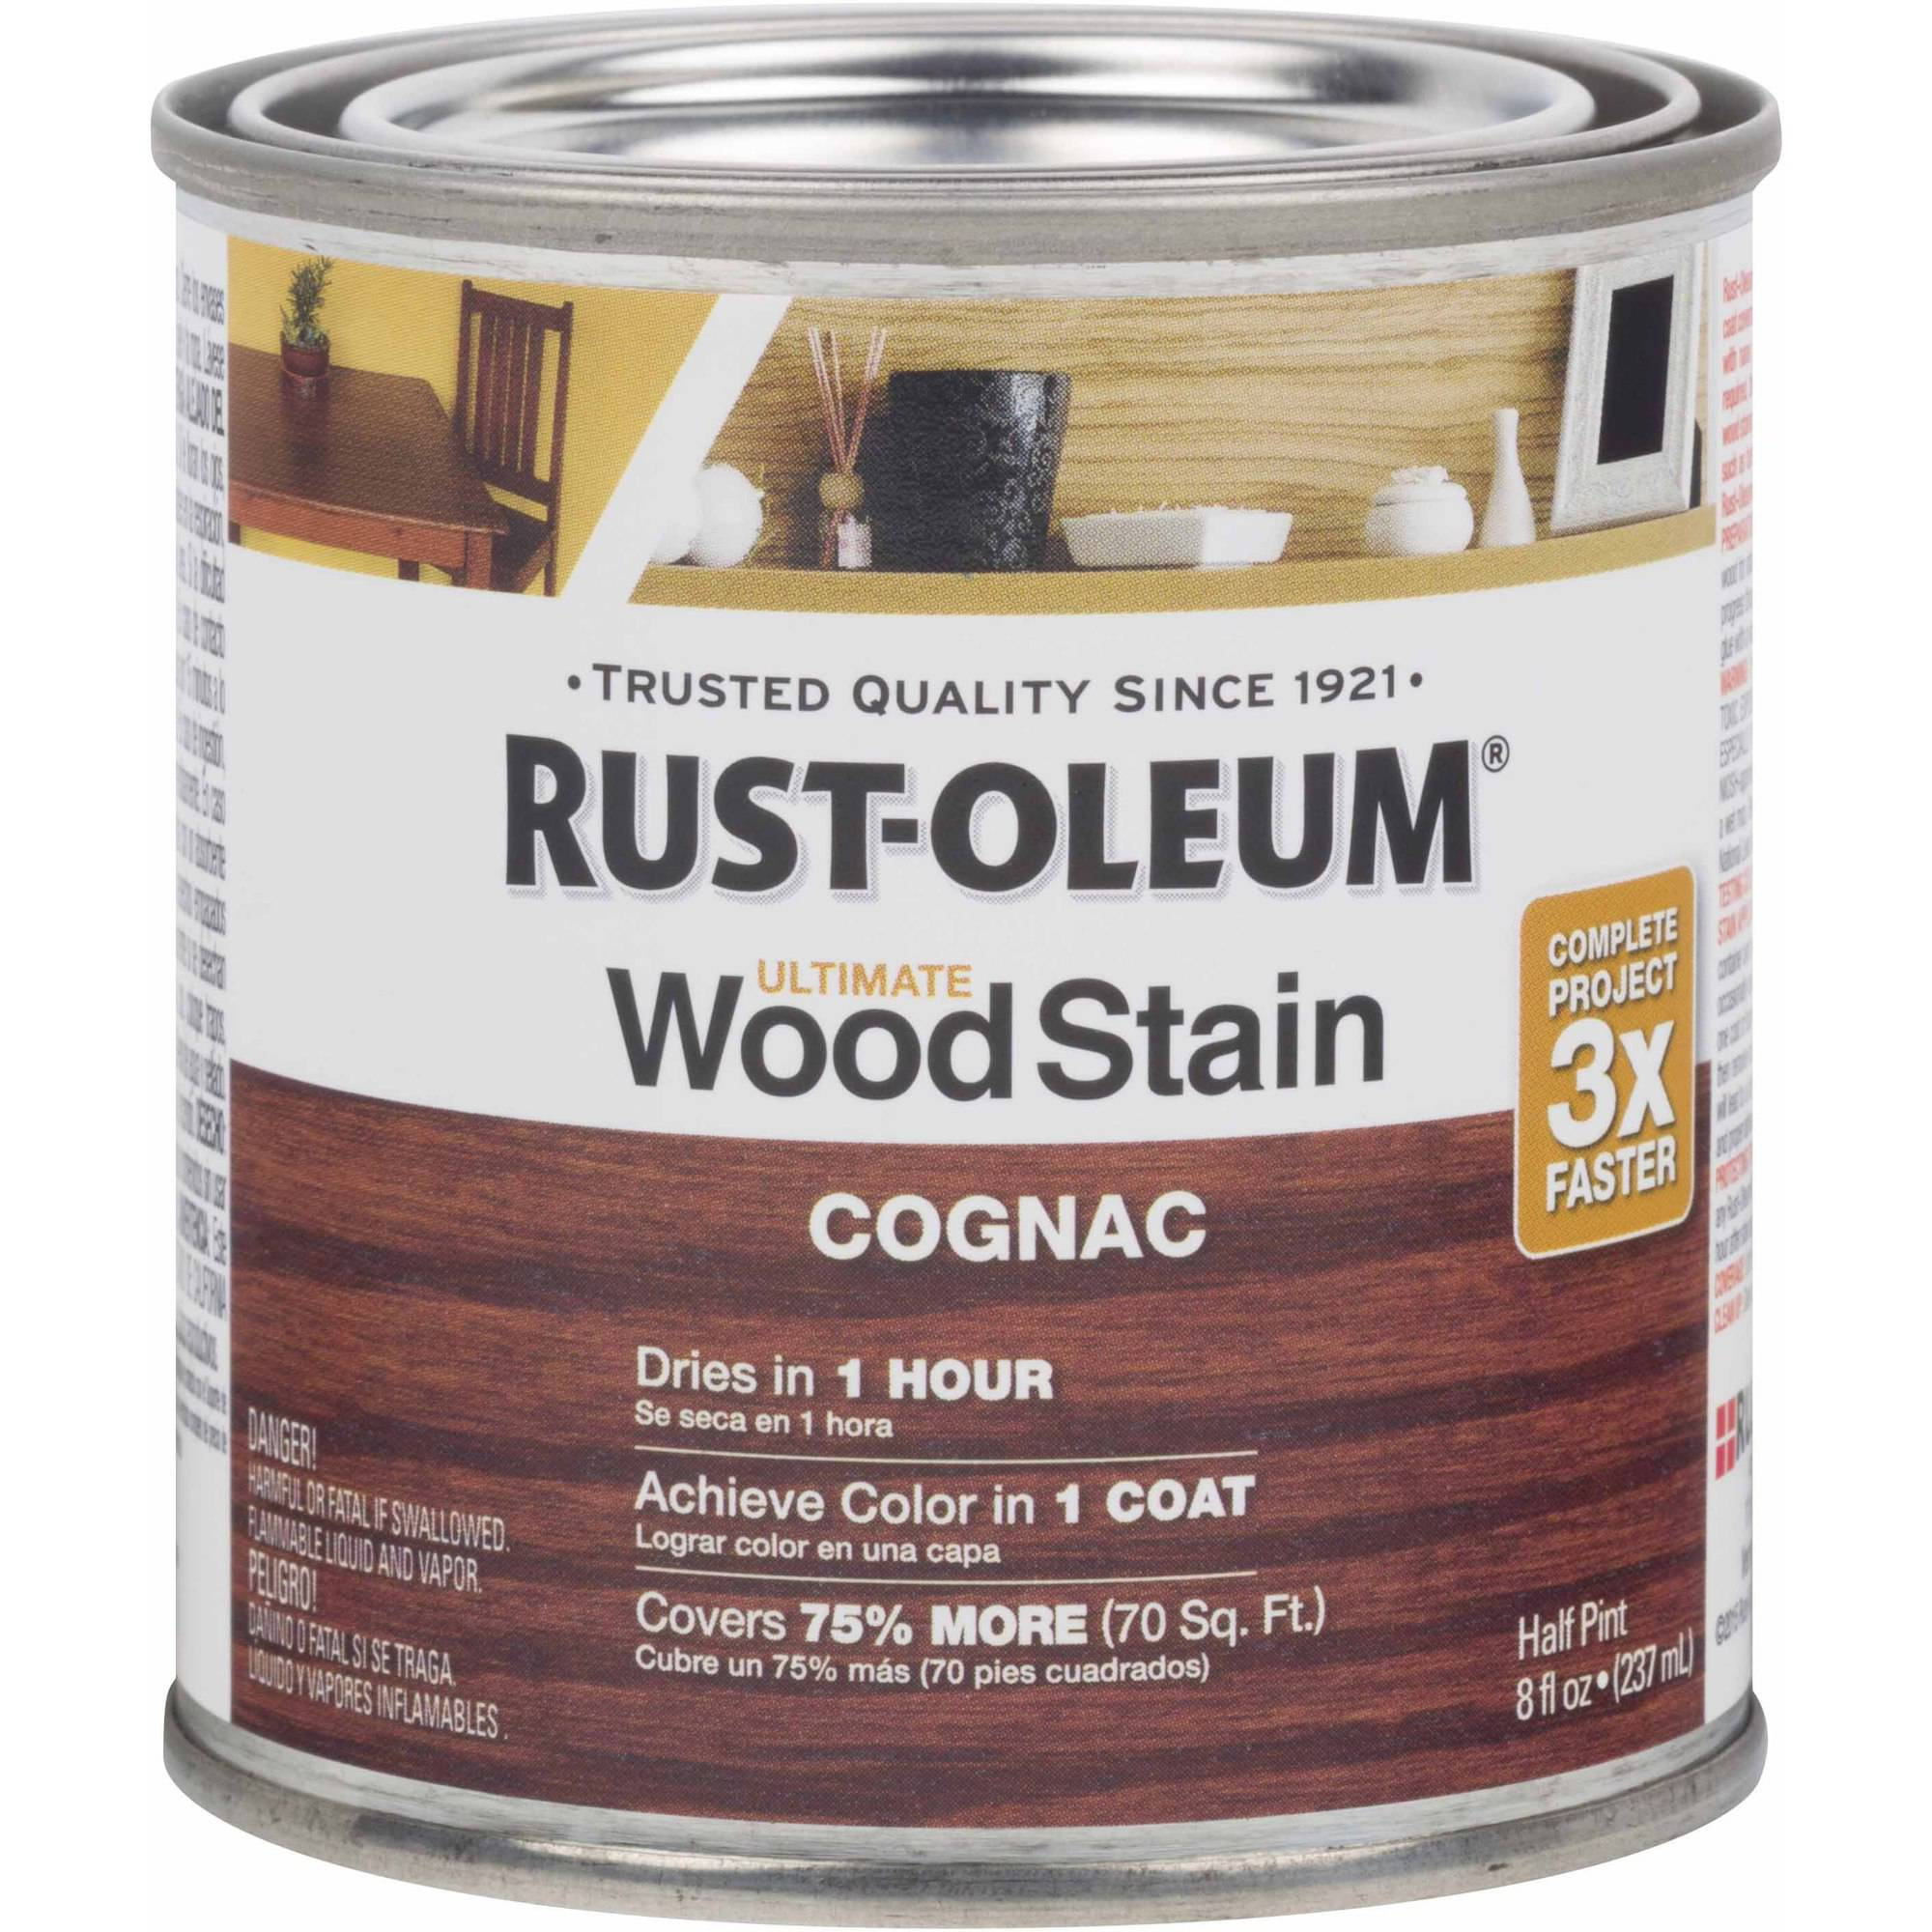 Rust-Oleum Ultimate Wood Stain Half-Pint, Cognac